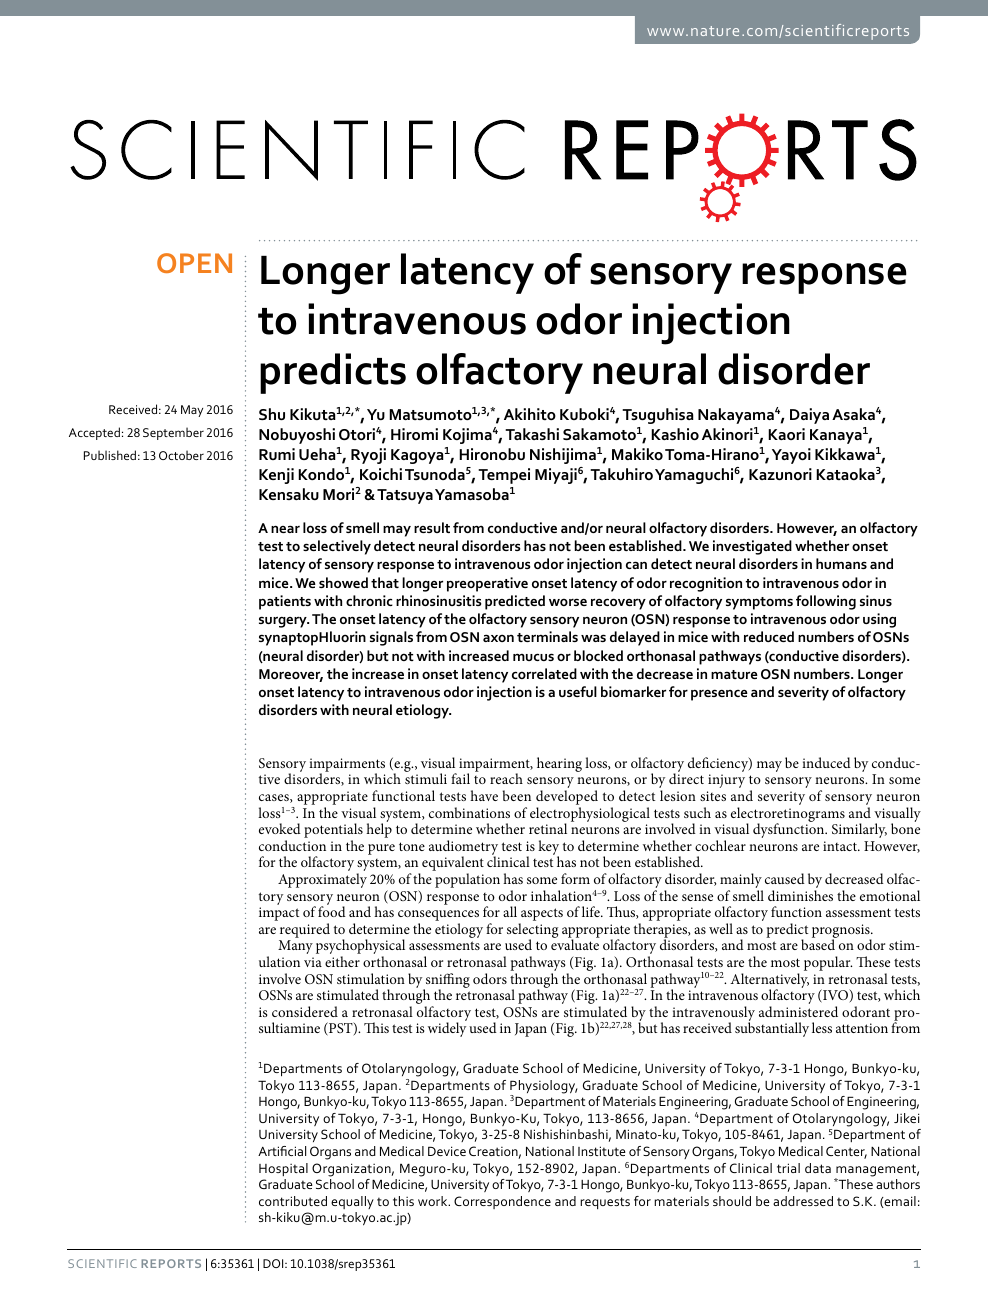 Longer latency of sensory response to intravenous odor